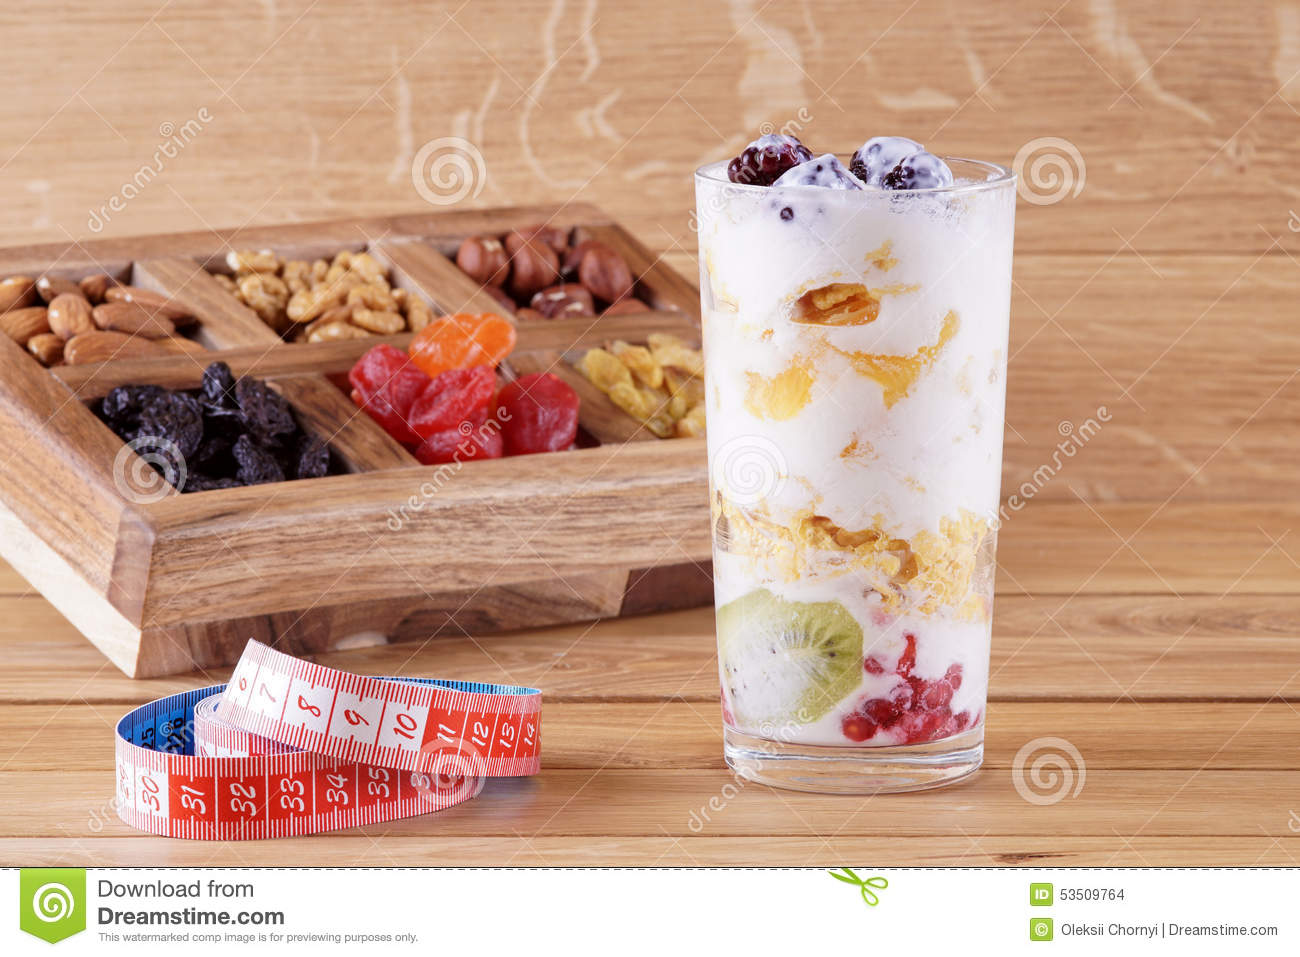 Liquid diet plan for rapid weight loss image 2